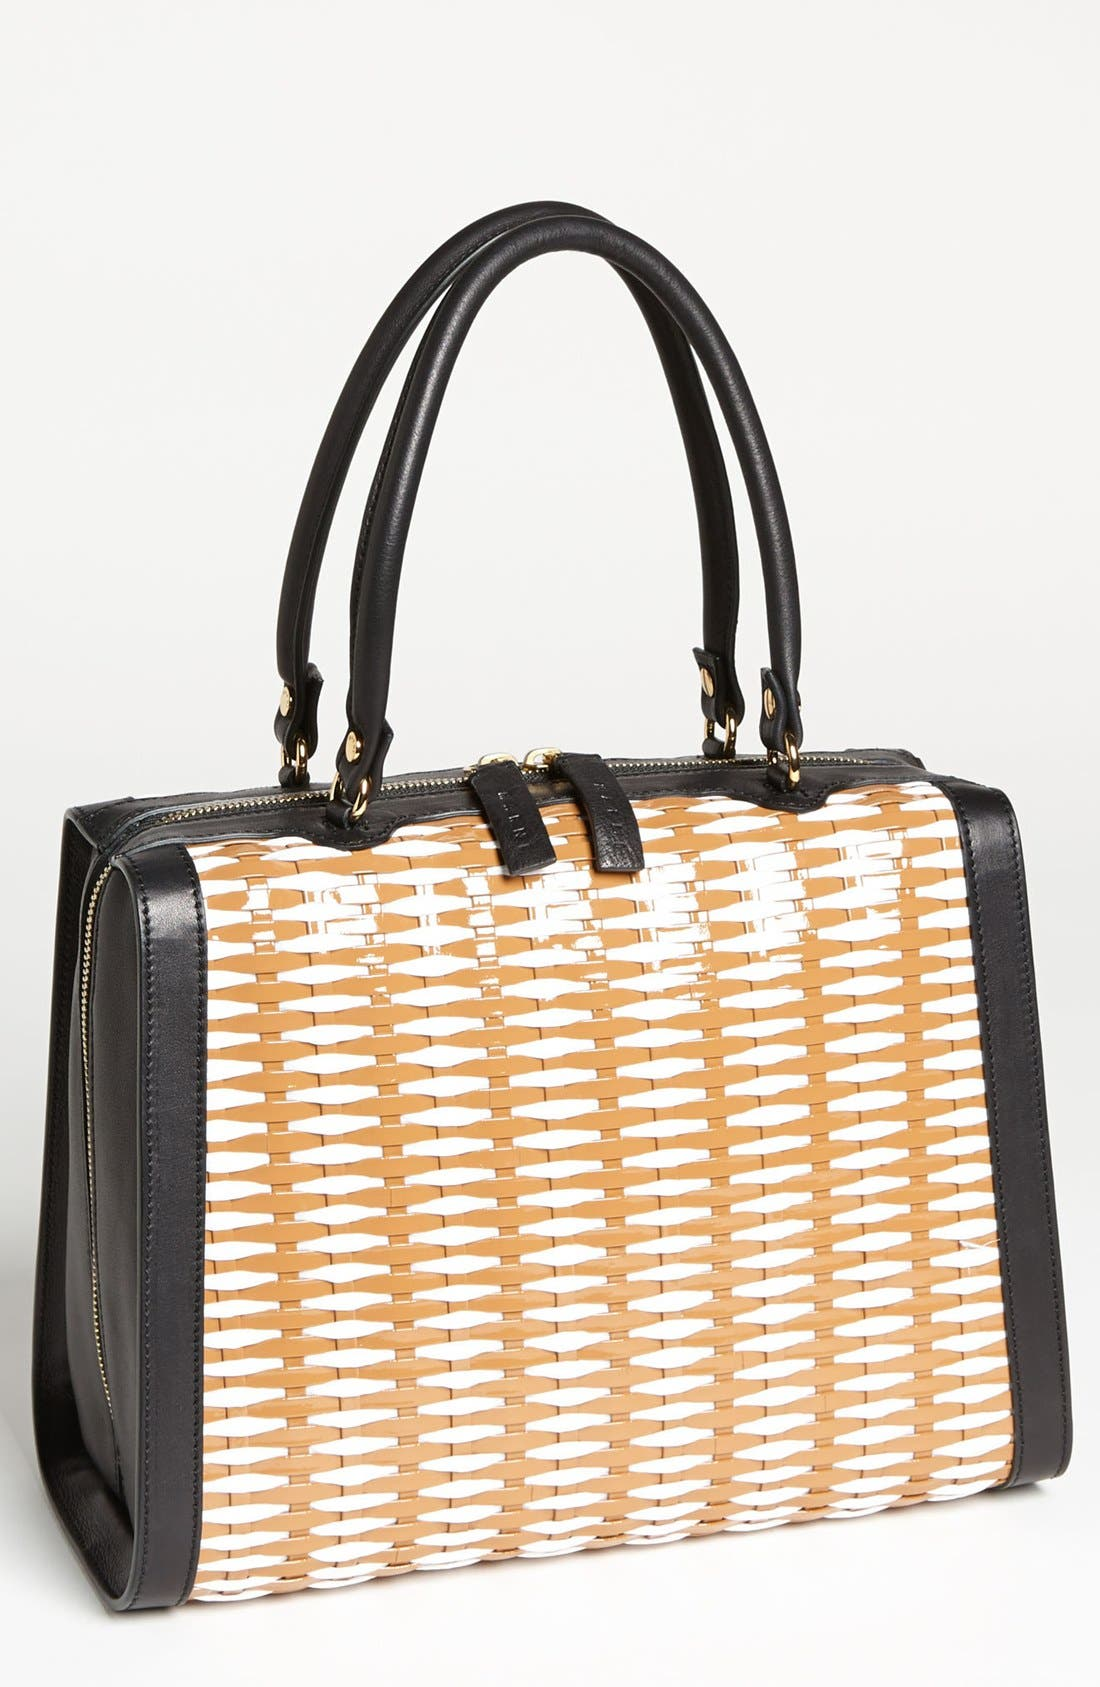 Main Image - Marni Woven Leather & Raffia Satchel